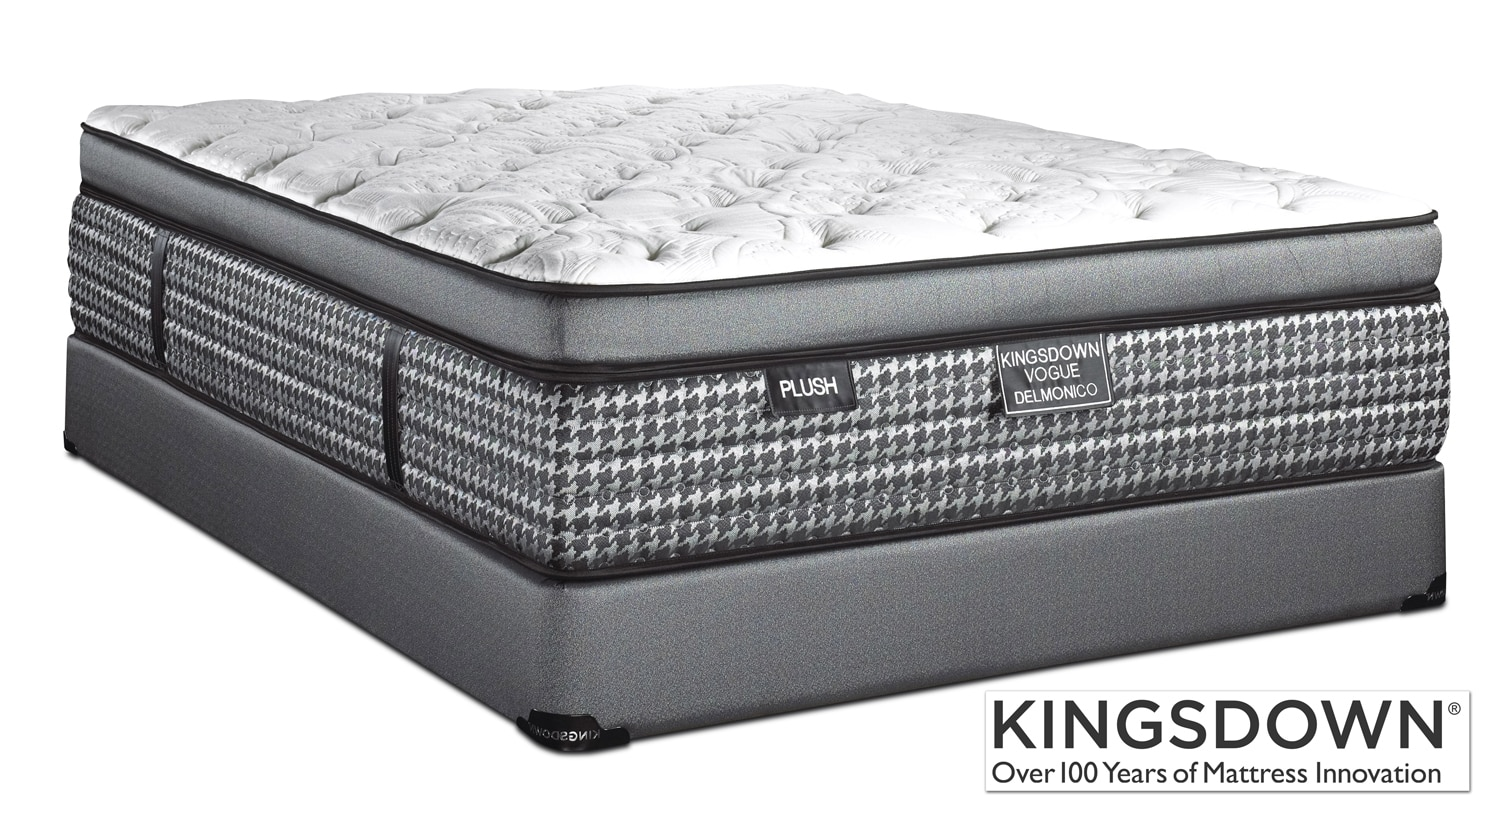 Mattresses and Bedding - Kingsdown Delmonico Plush Twin Mattress/Boxspring Set